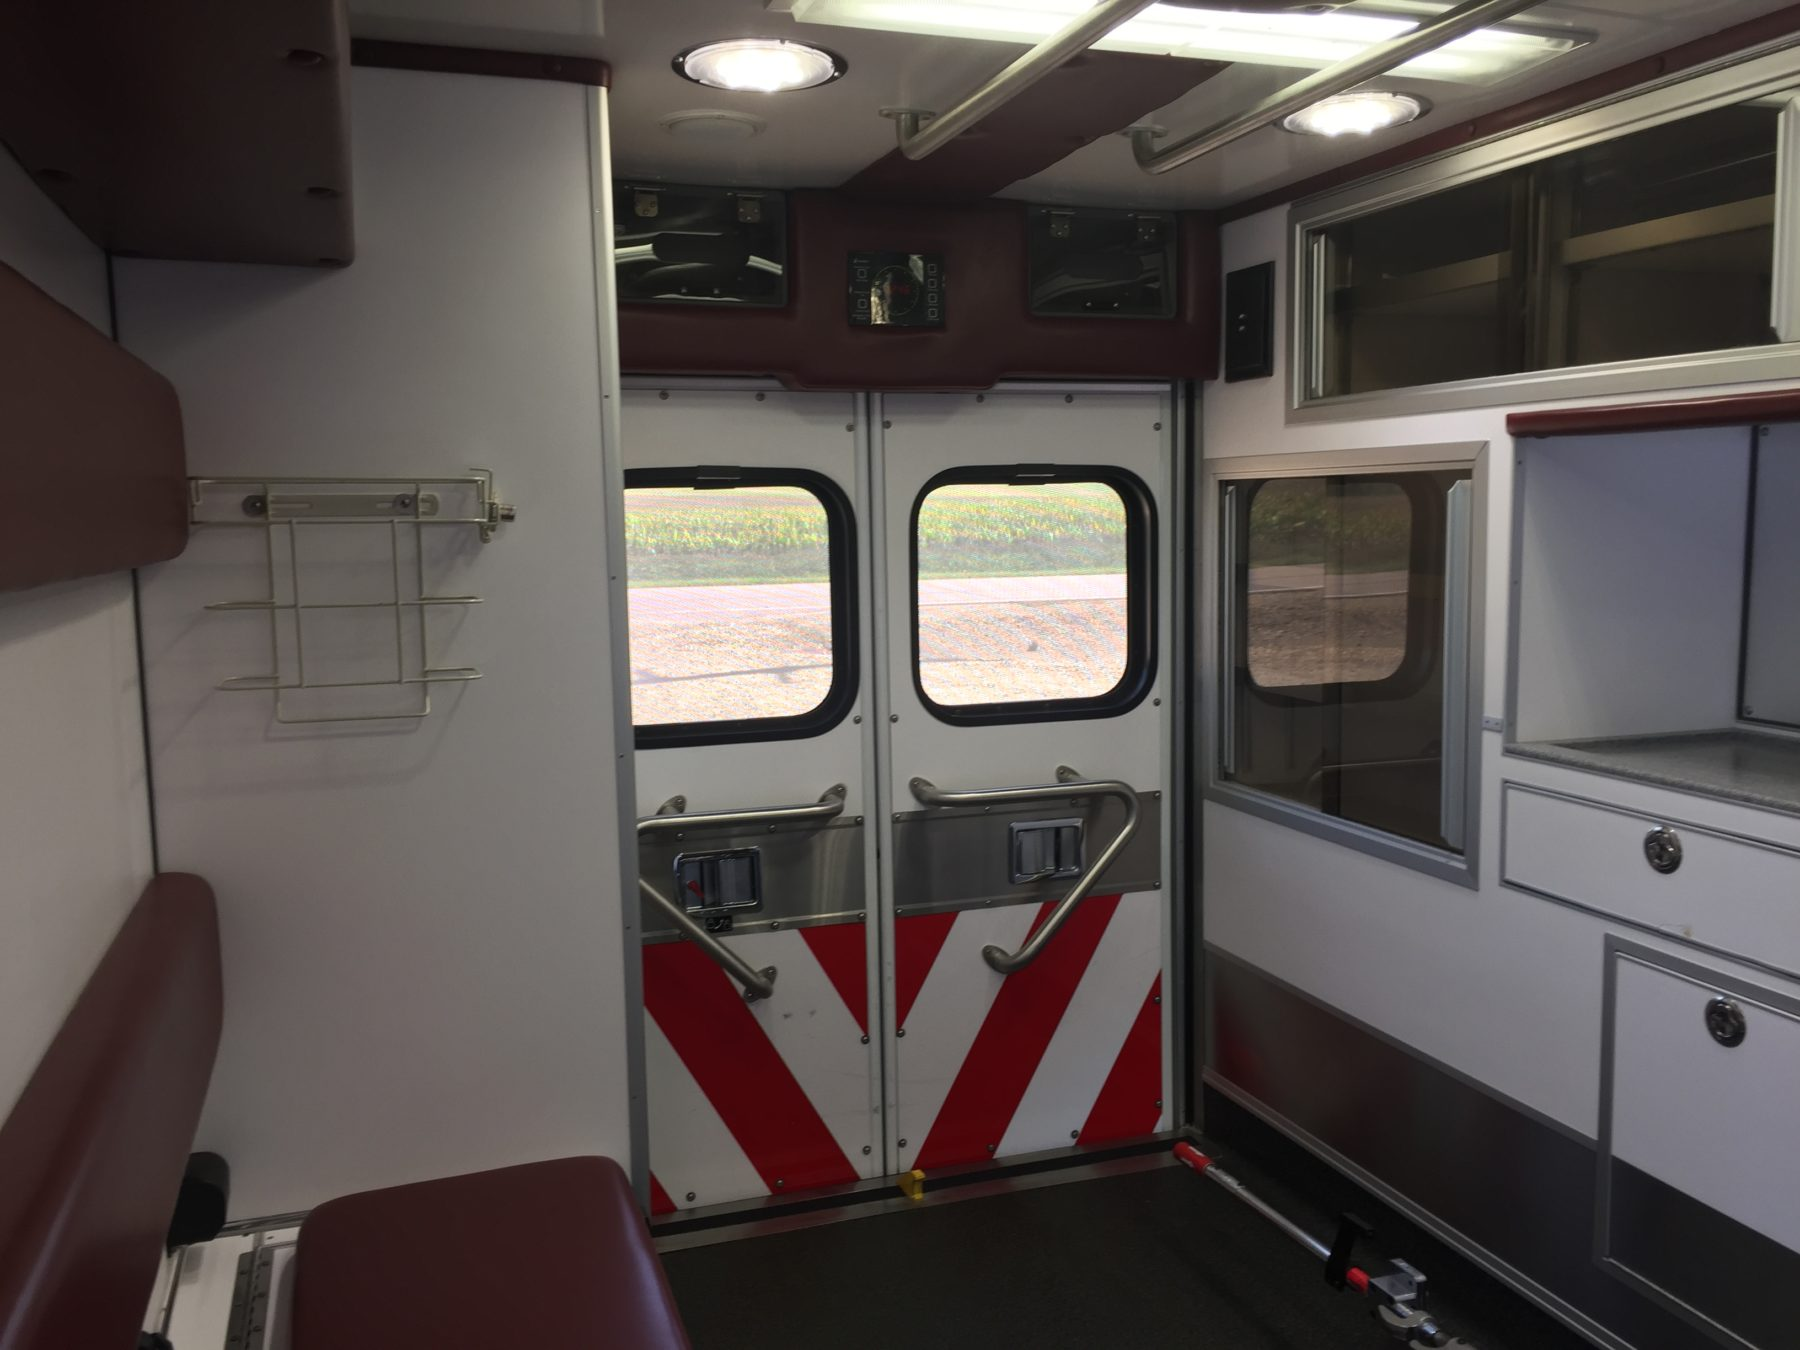 2009 Dodge 4500 Heavy Duty Ambulance For Sale – Picture 14